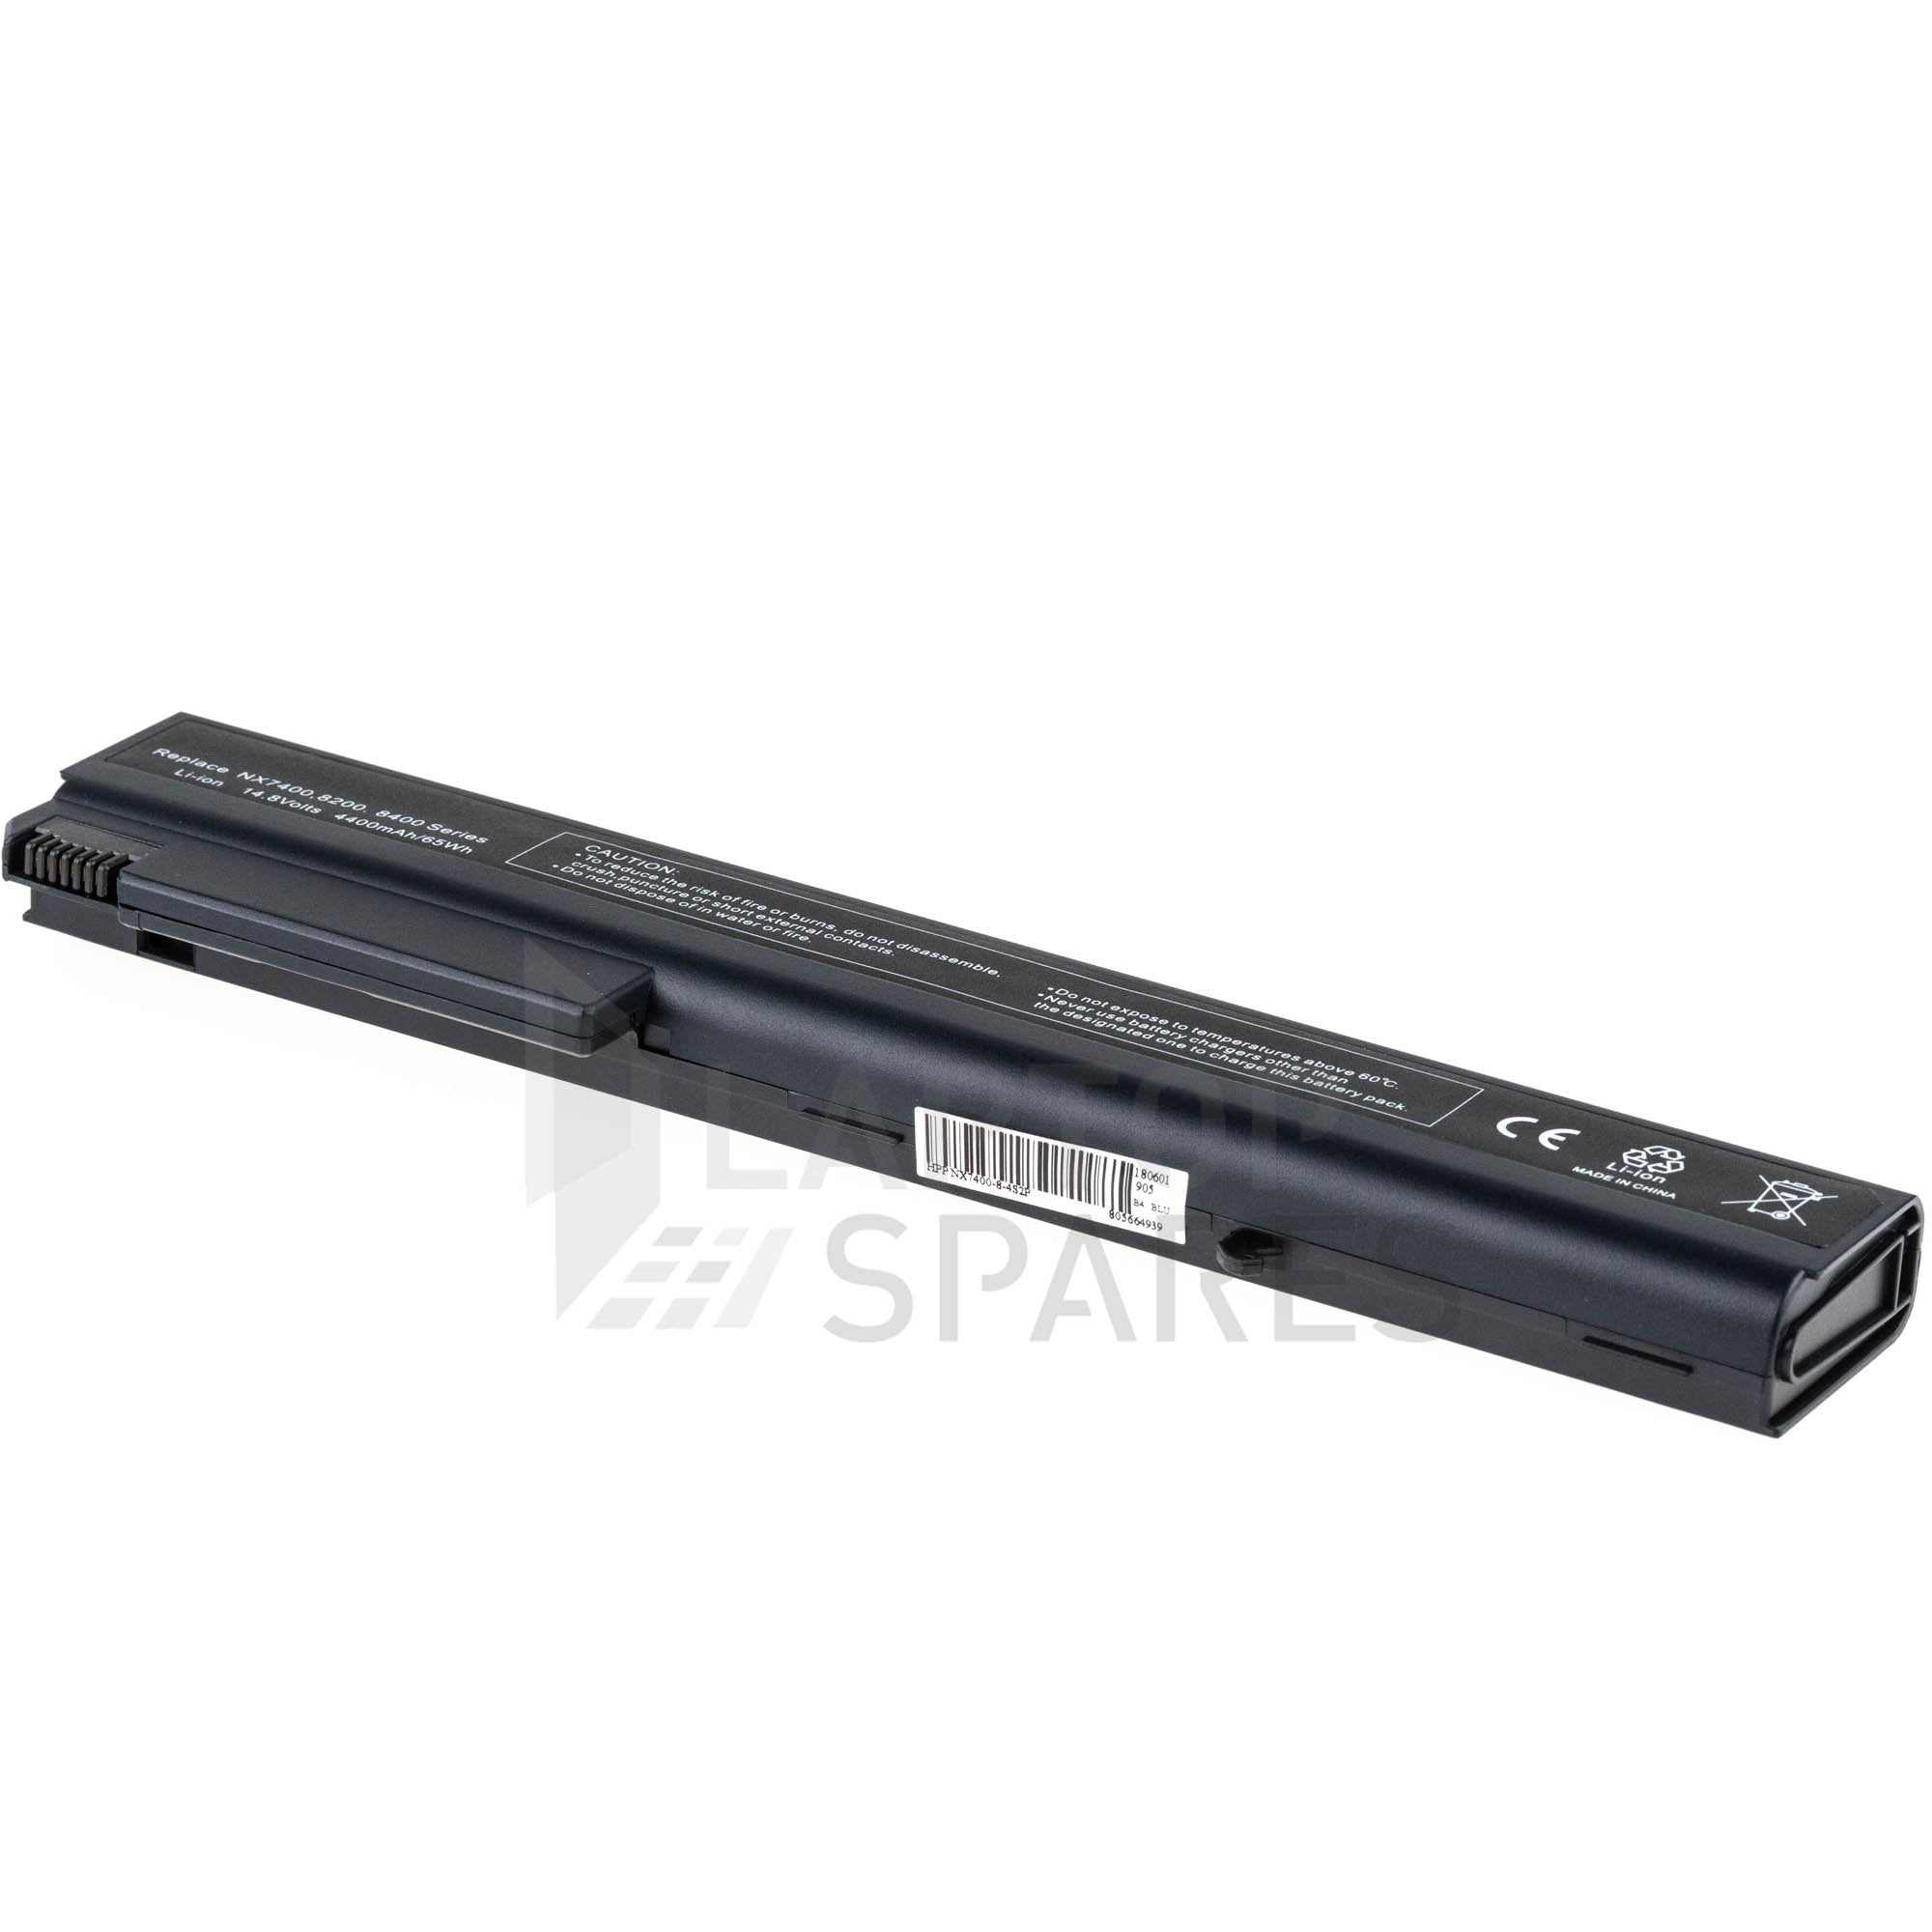 HP Business Notebook 8510W MOBILE WORKSTATION 4400mAh 6 Cell Battery